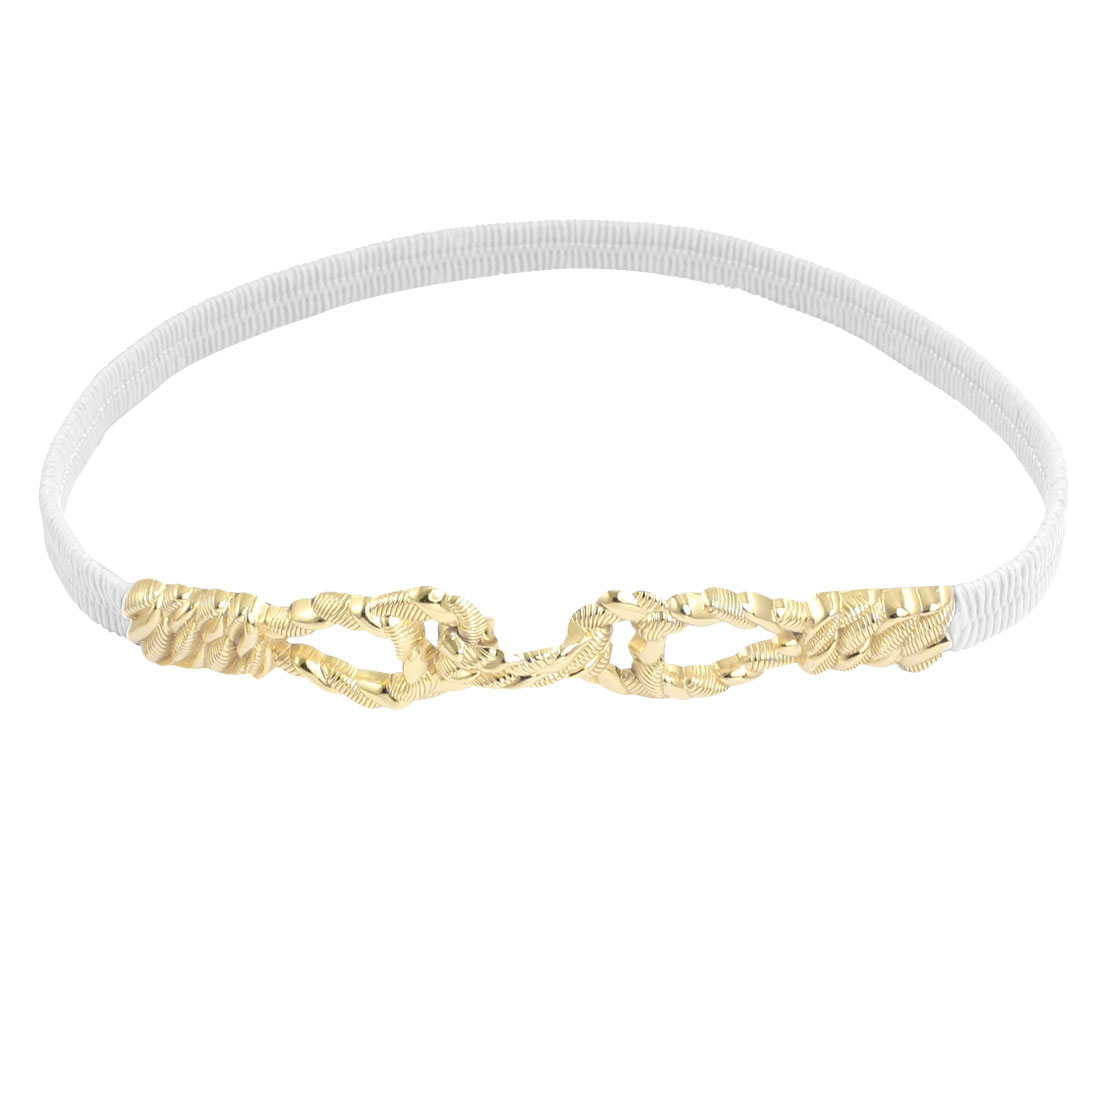 Lady Metal Interlocking Buckle Stretchy Faux Leather Cinch Belt White